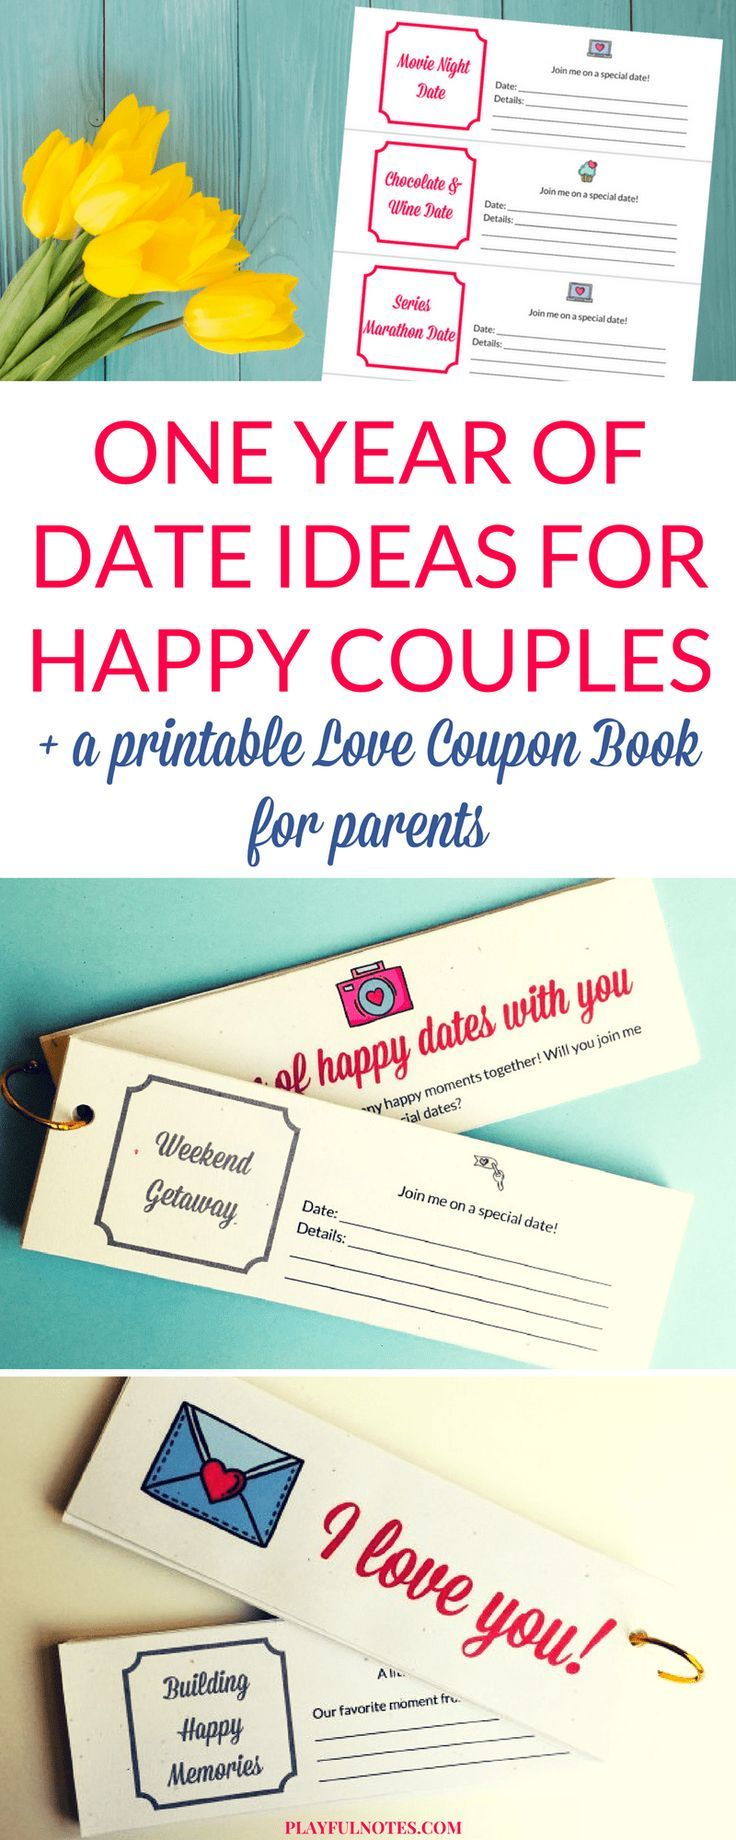 One year of date ideas for happy couples A love coupon